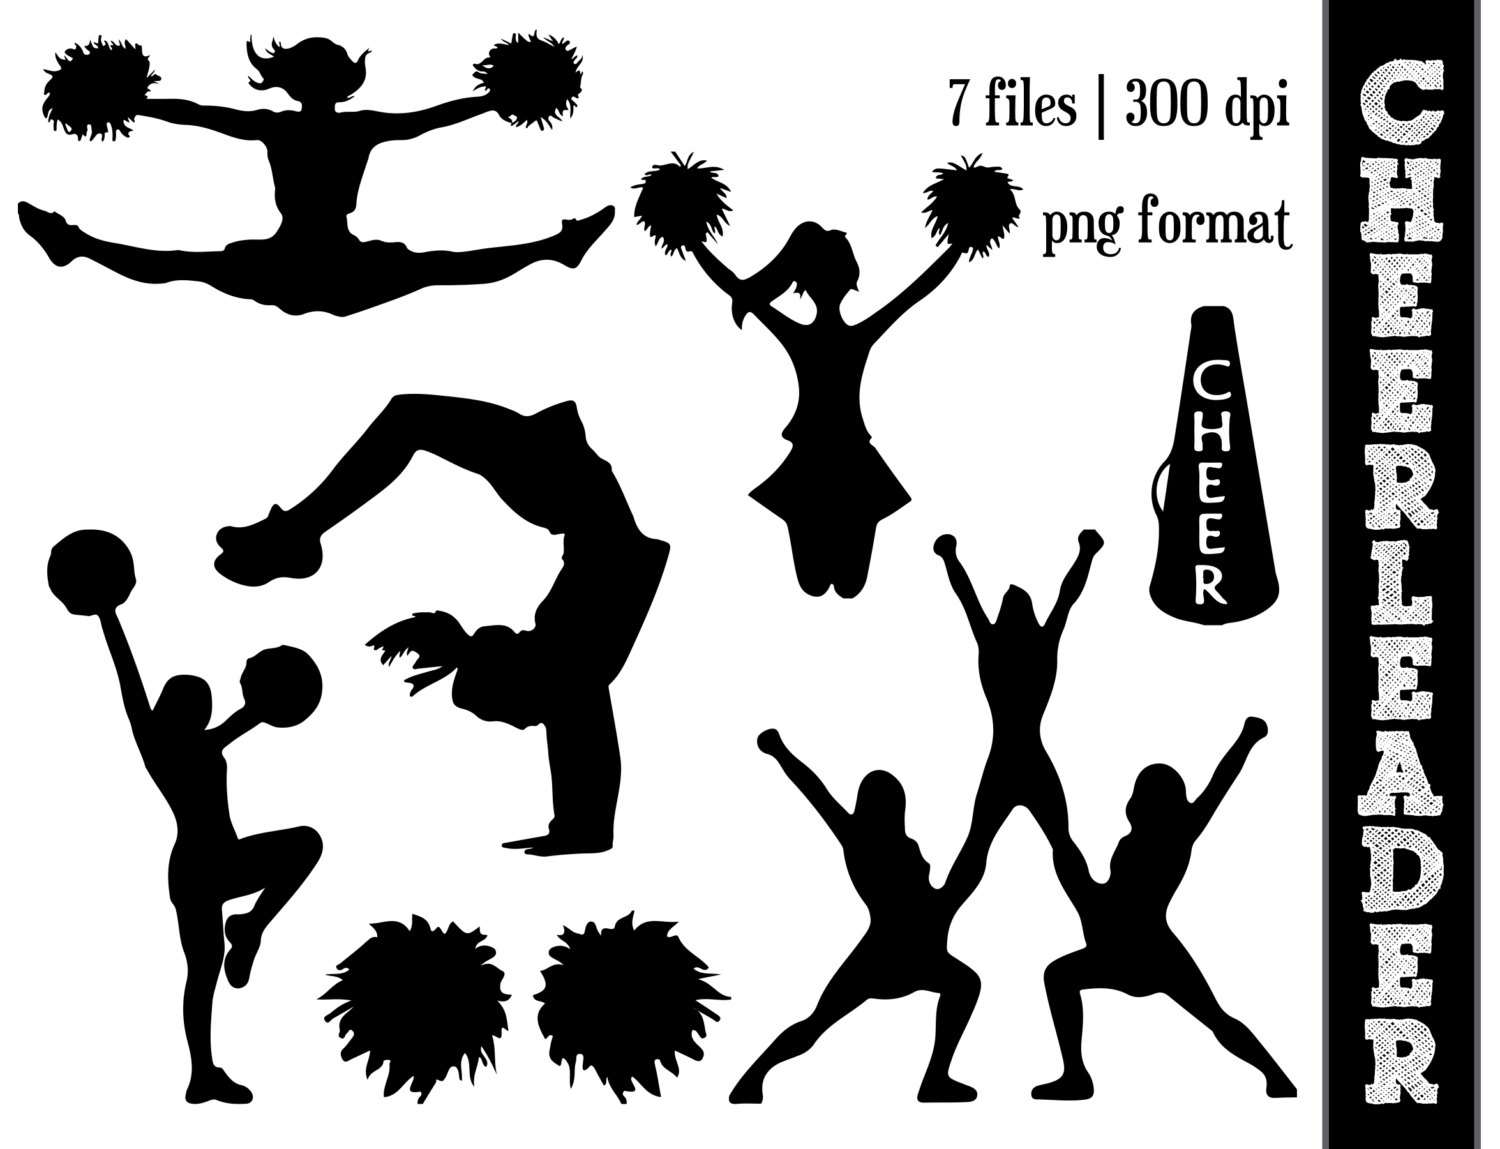 Cheerleader Silhouettes // Cheer Silhoue-Cheerleader Silhouettes // Cheer Silhouette // Cheering Clipart // Athletic, Athlete Silhouettes // Pom Poms-11